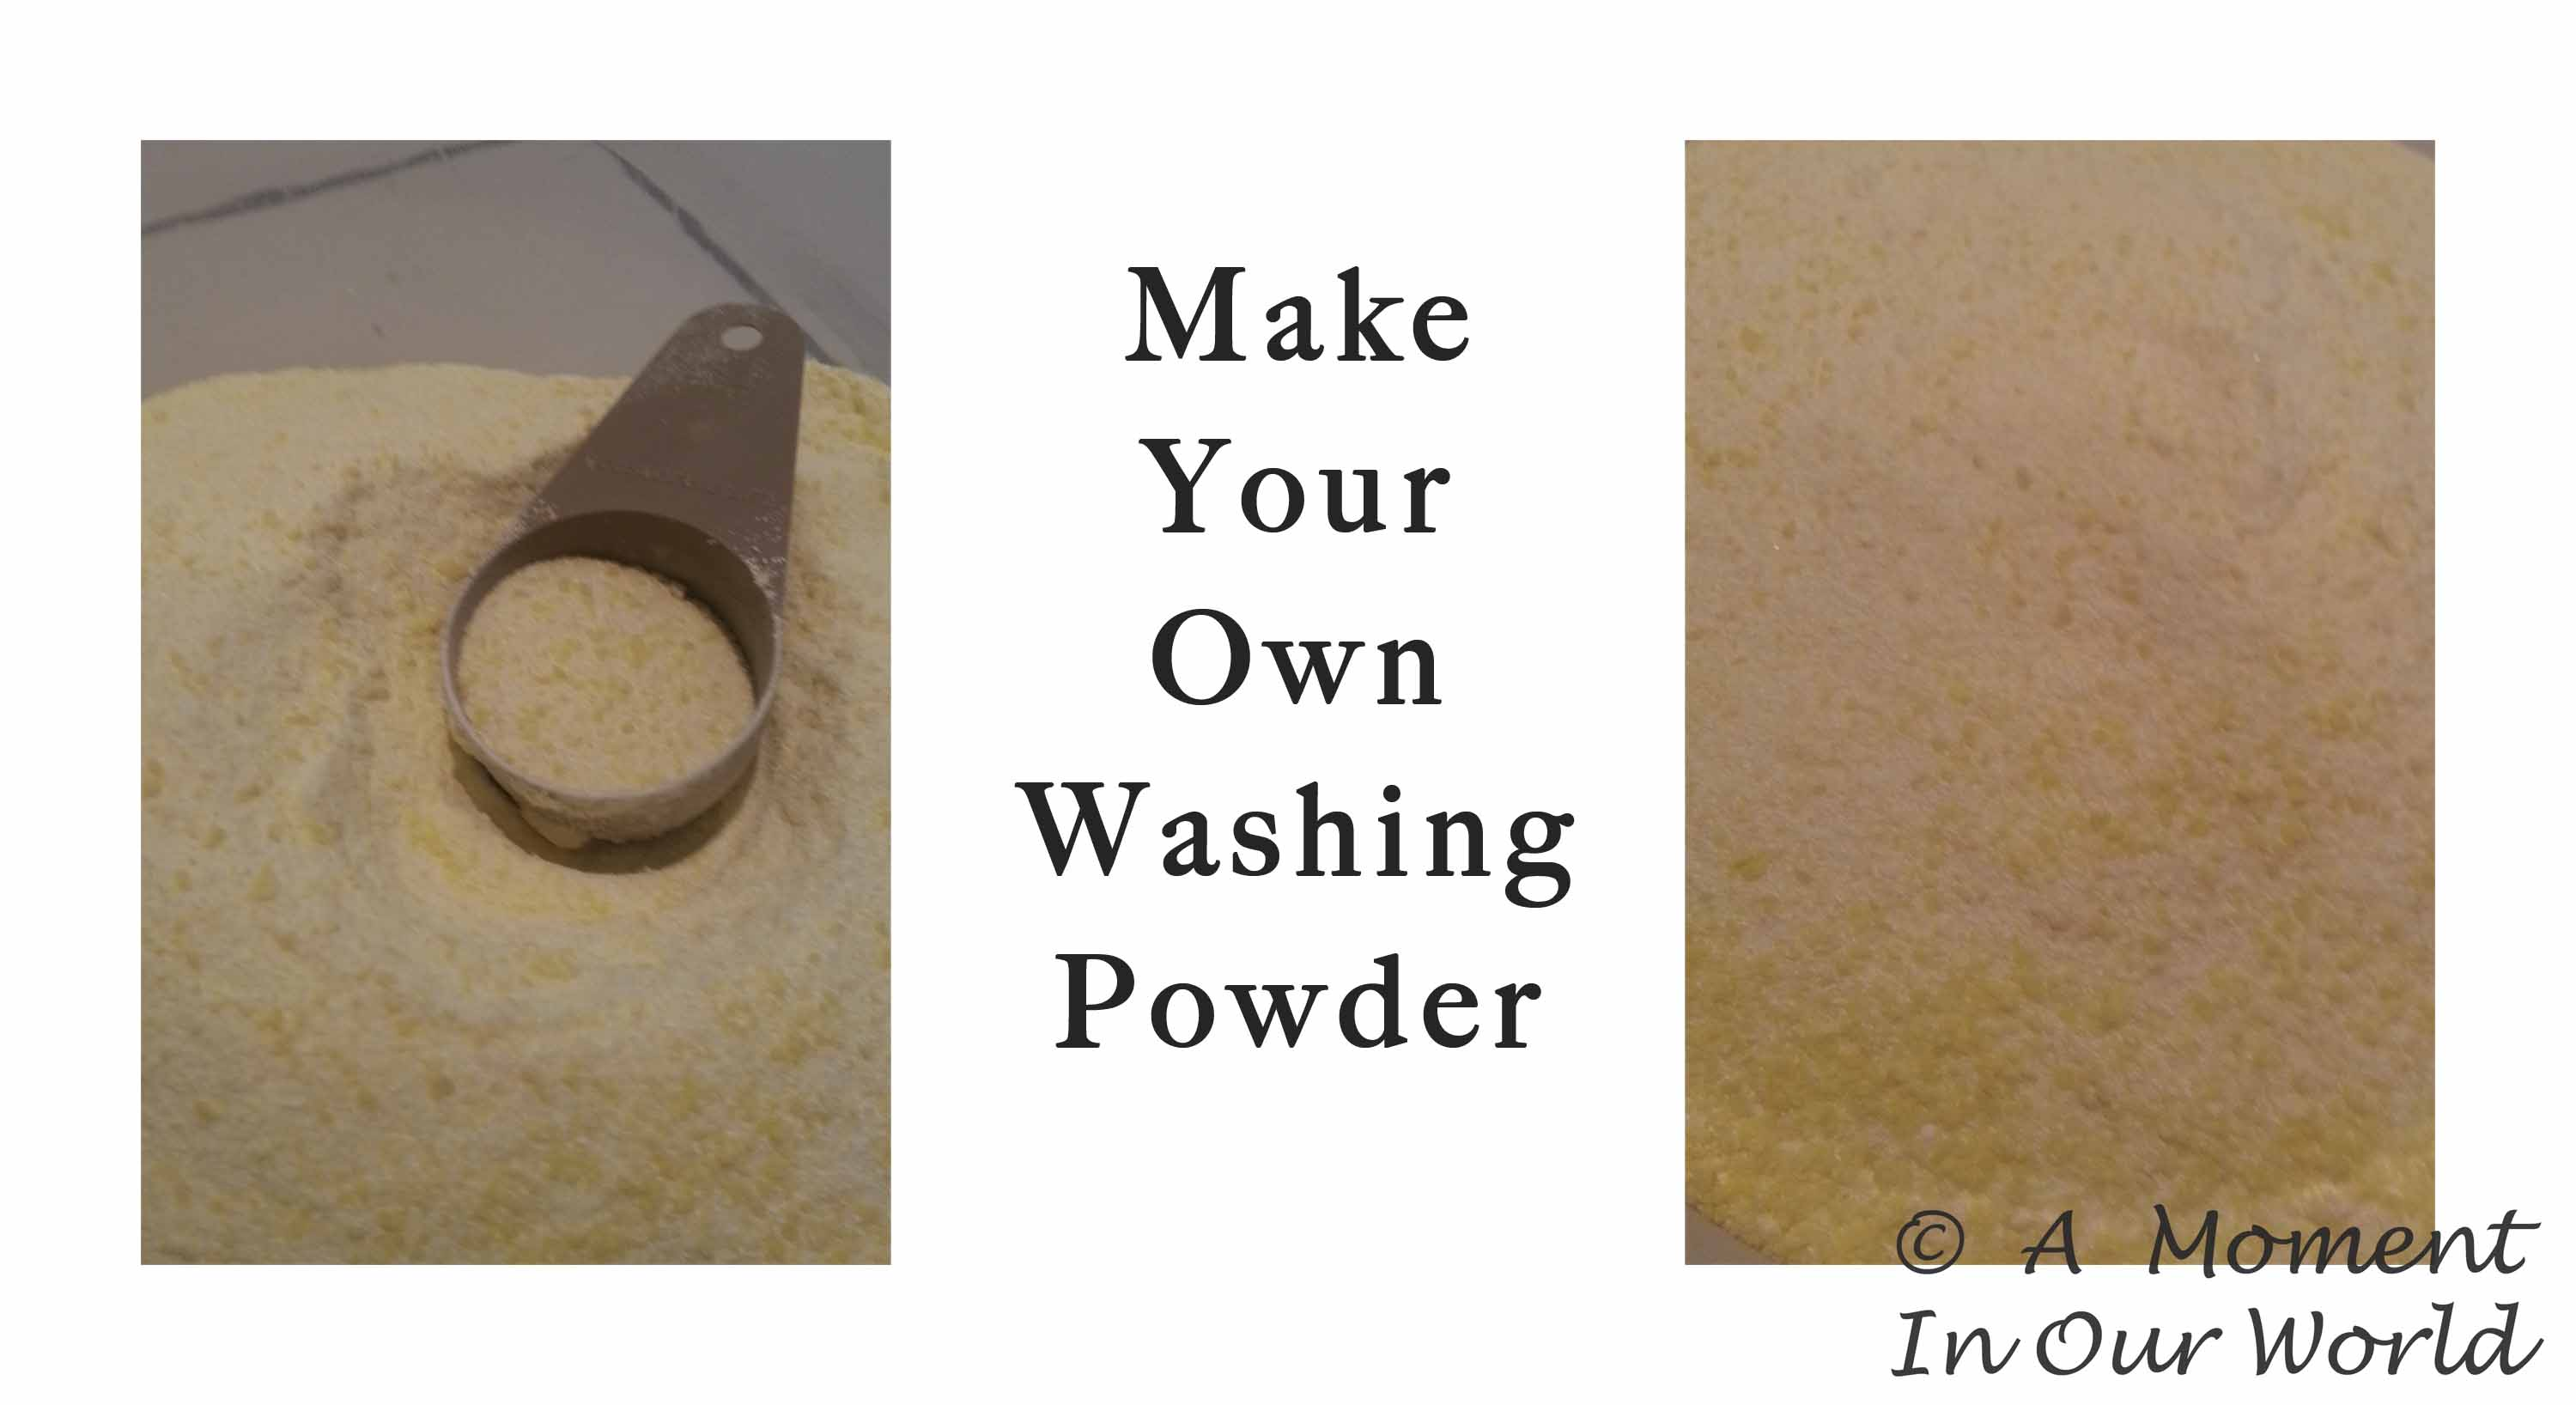 Make your own Washing Powder